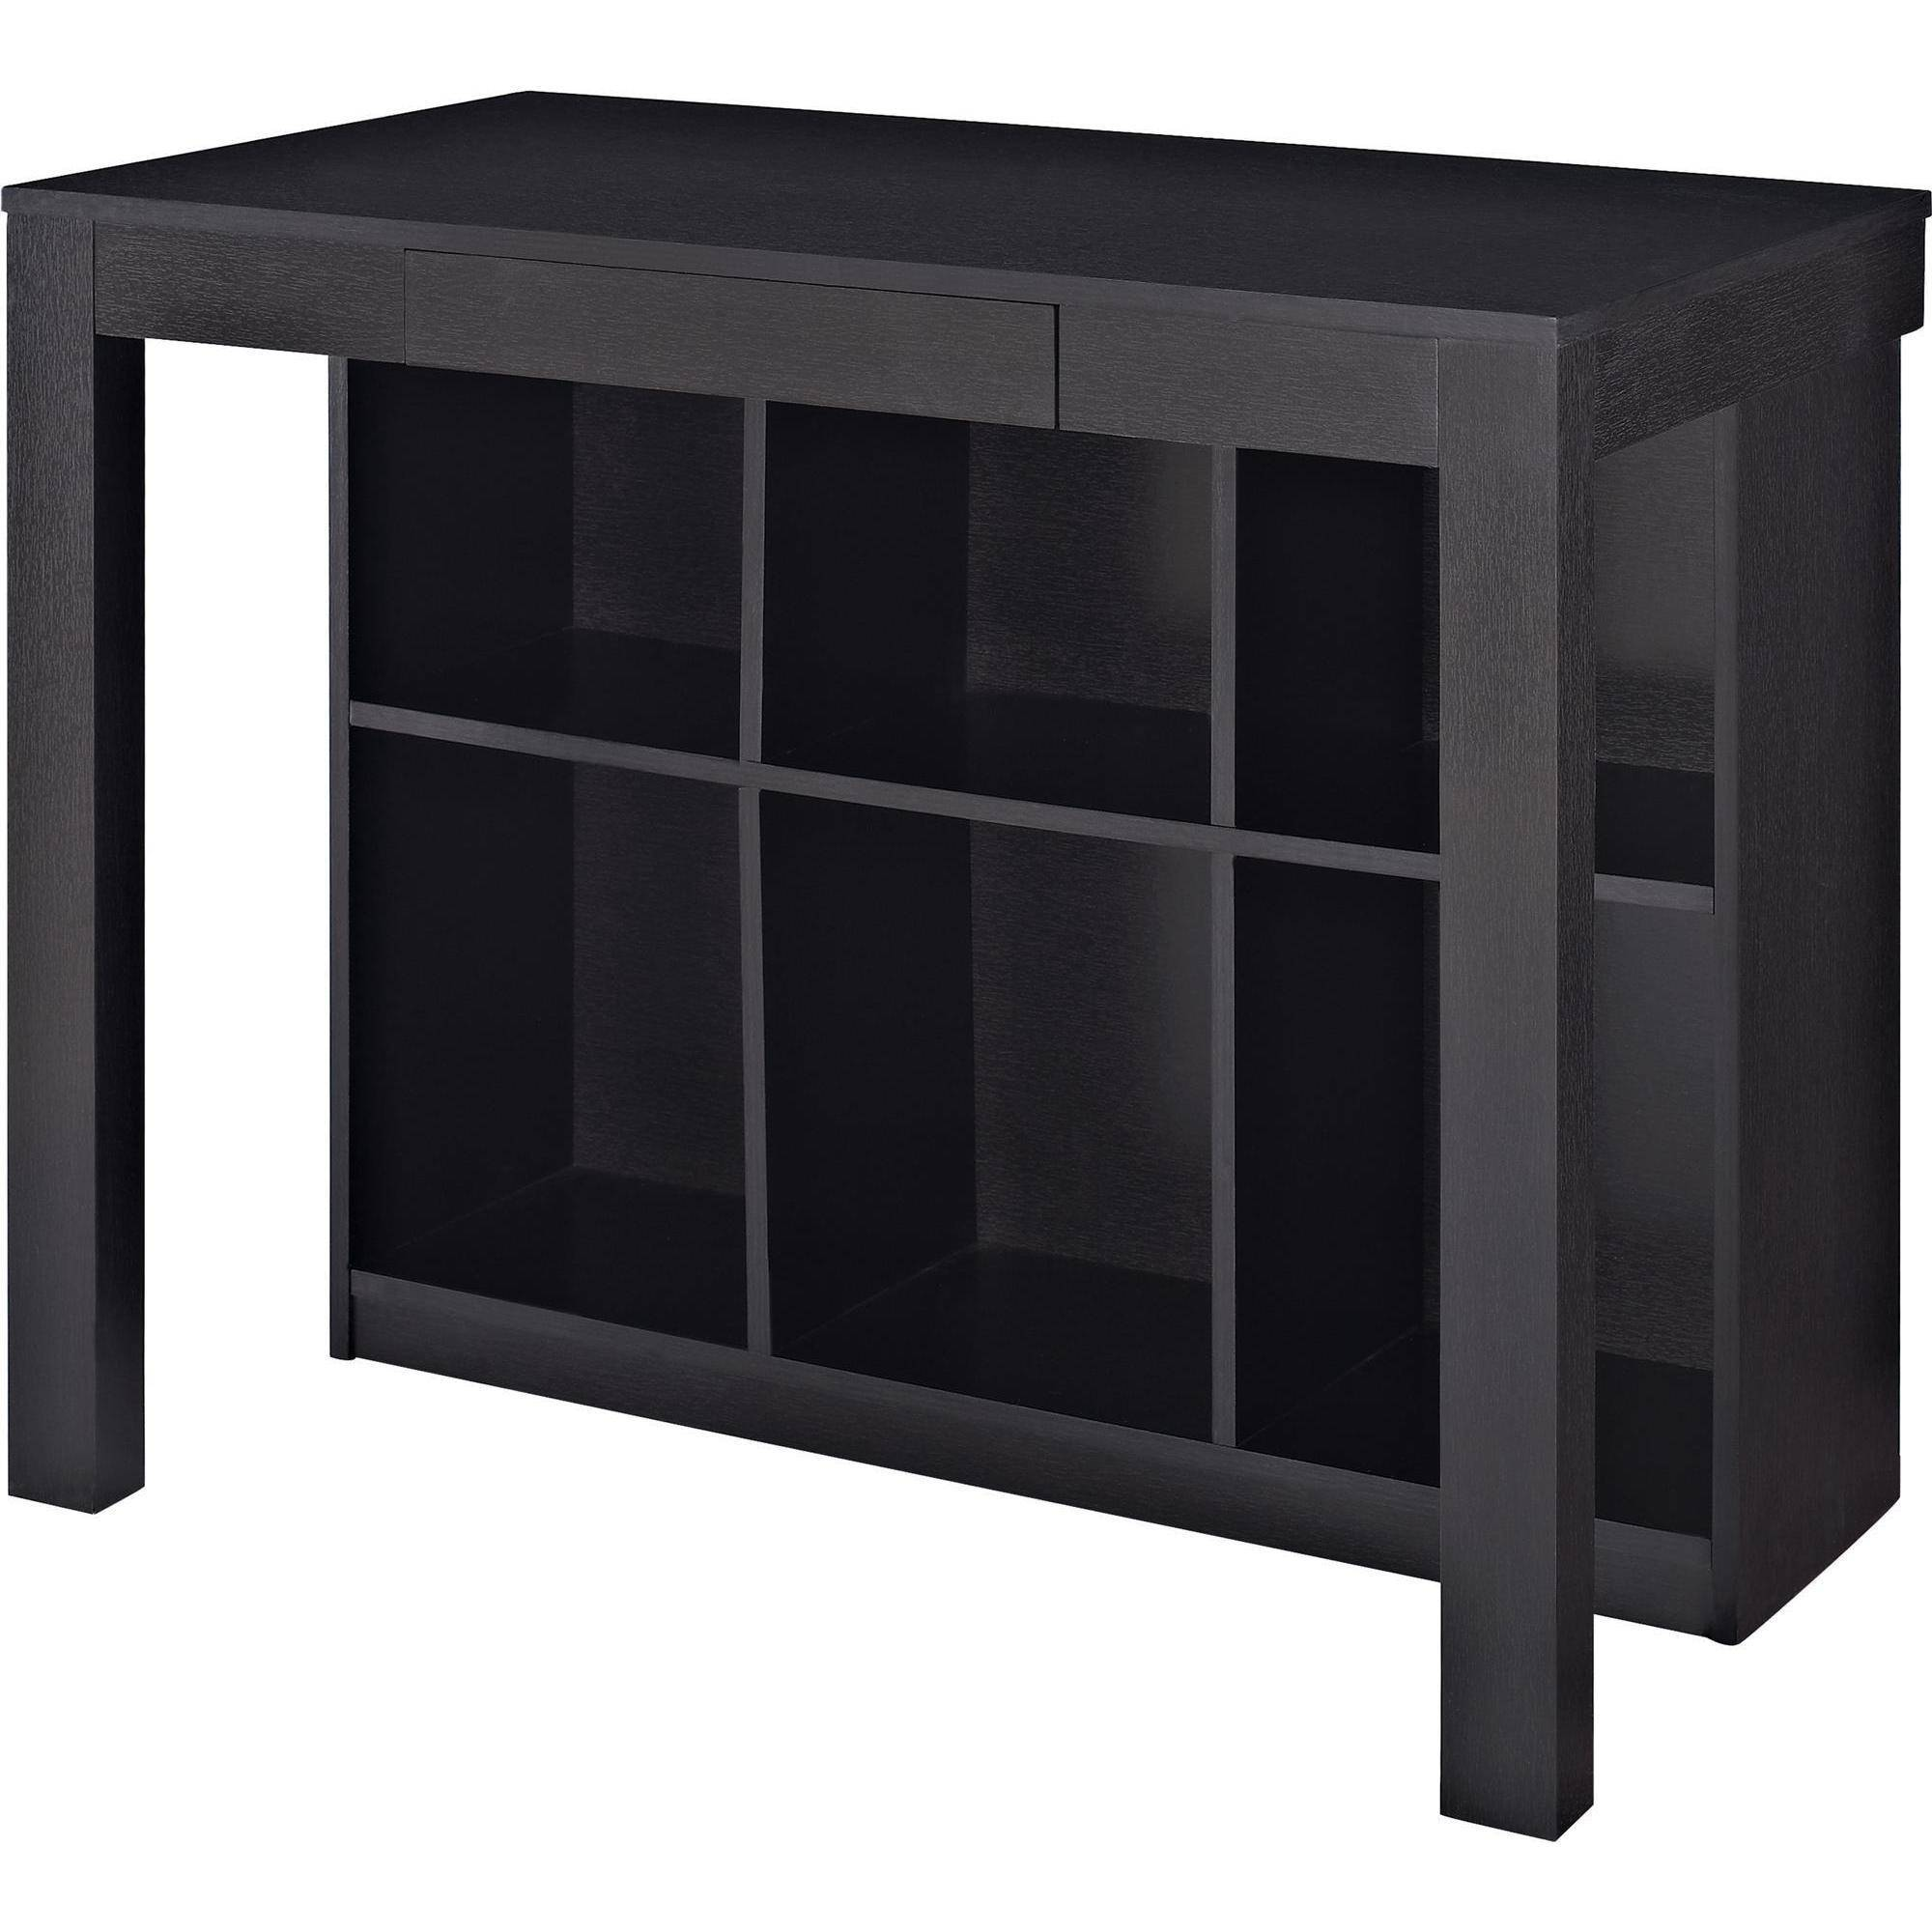 Ameriwood Home Parsons Desk With Cubbies, Black   Walmart.com